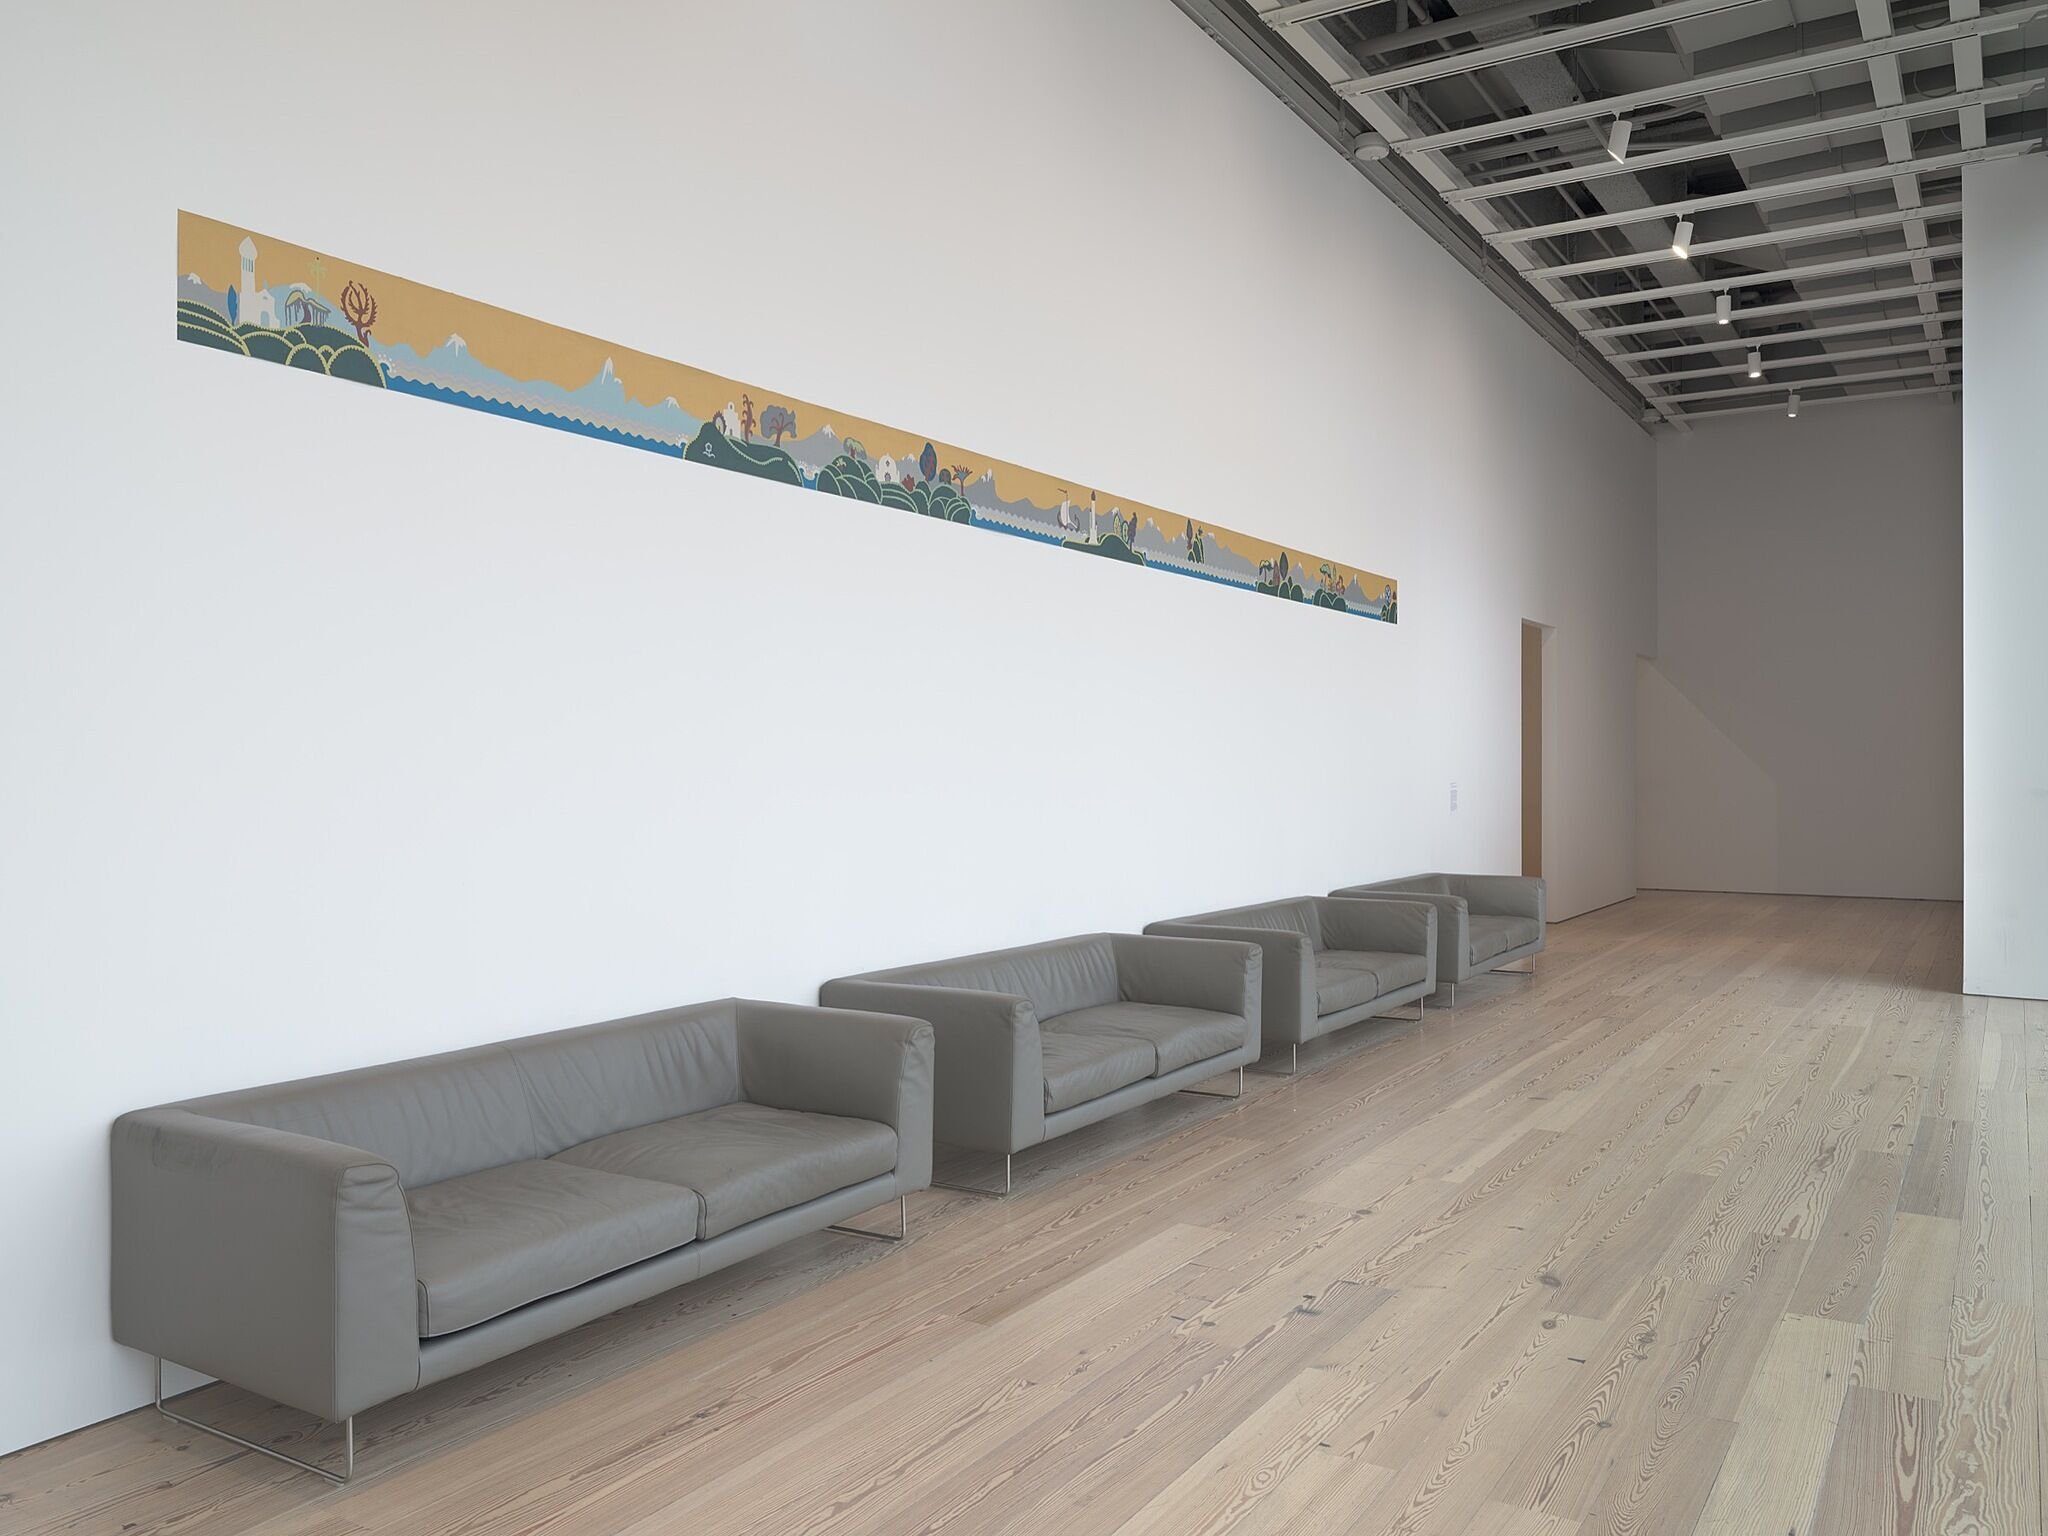 A long painting above a couch in a gallery looking out towards large windows.